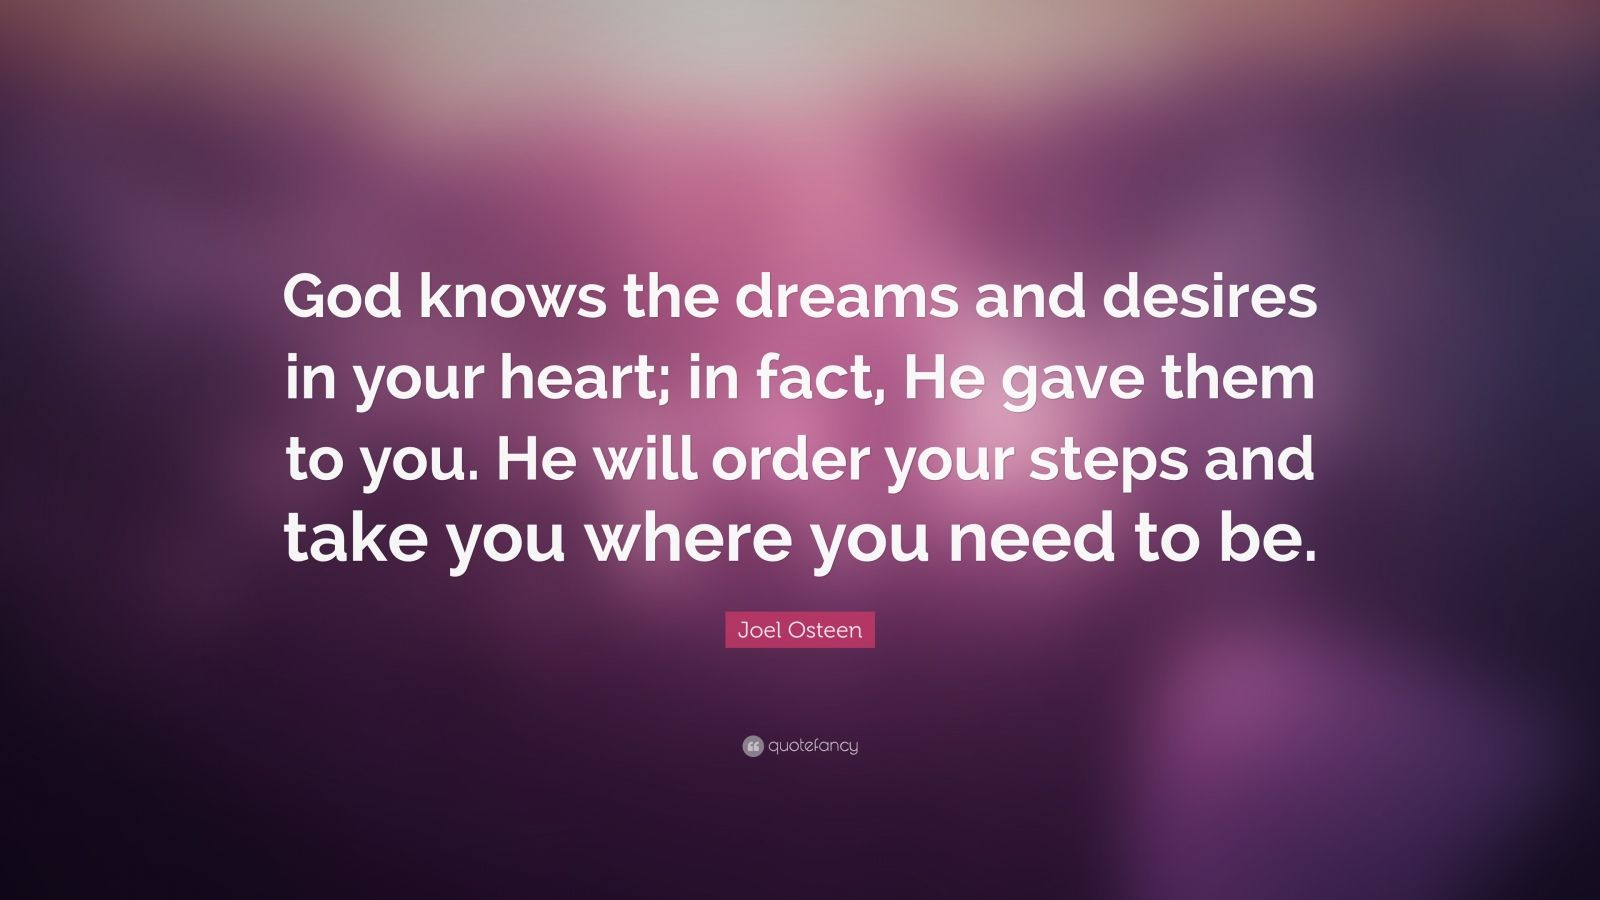 Zen Quote Wallpapers Joel Osteen Quote God Knows The Dreams And Desires In